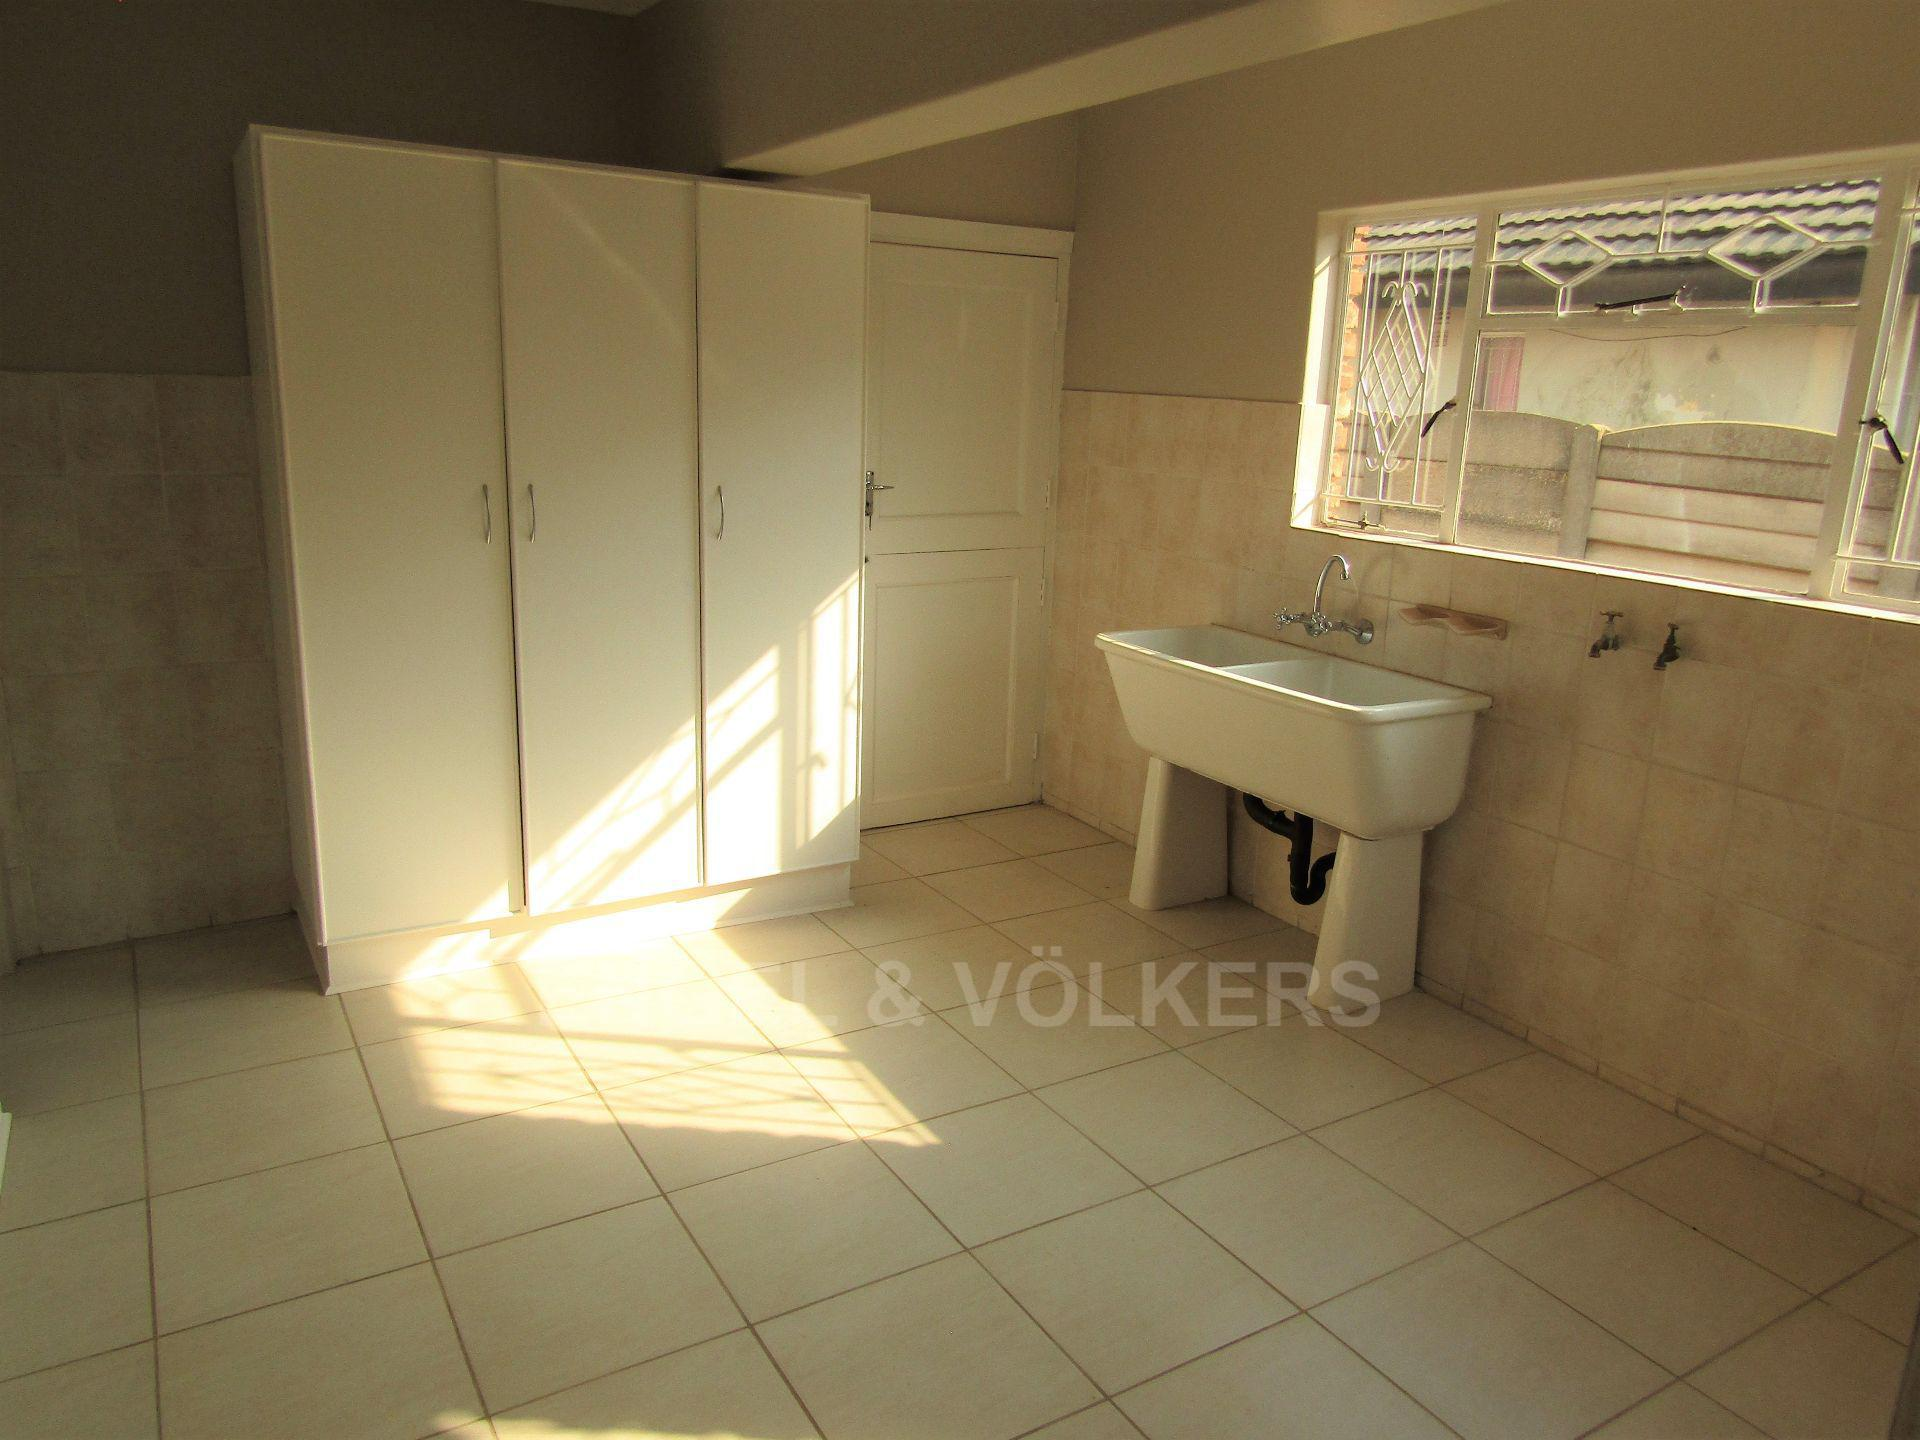 Potchefstroom Central property for sale. Ref No: 13522202. Picture no 10